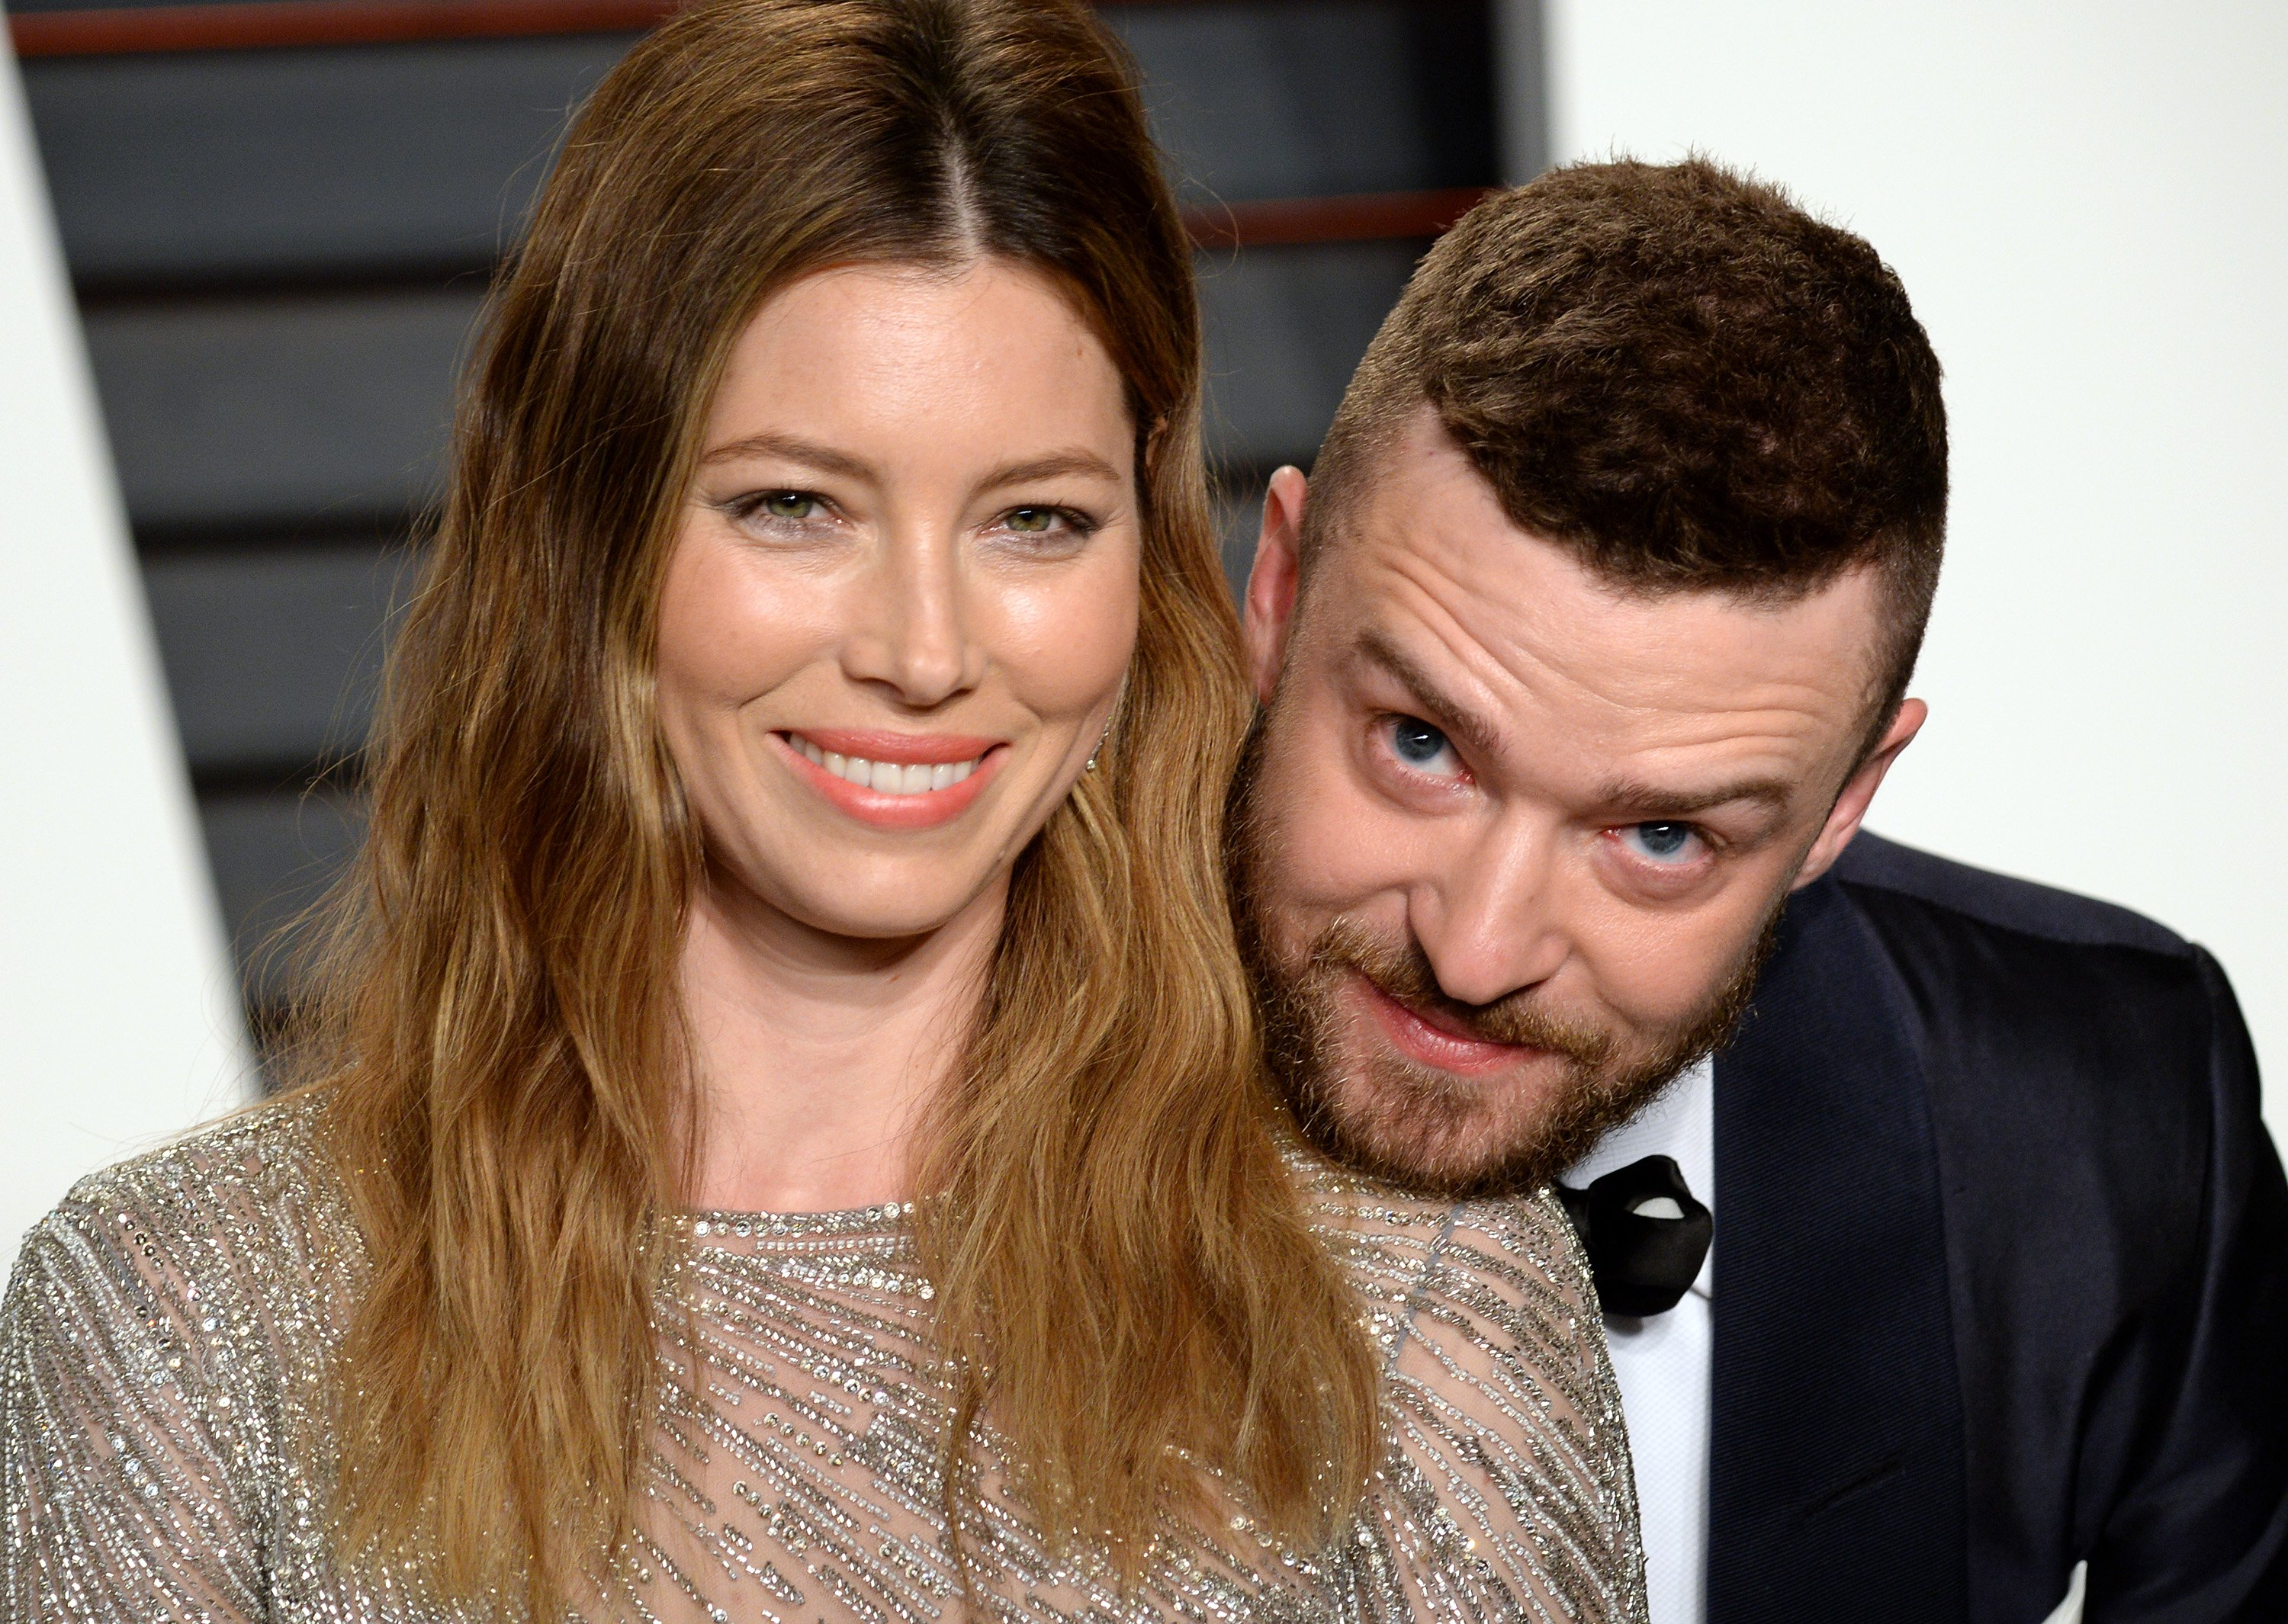 Justin Timberlake and Jessica Biel at the 2016 Vanity Fair Oscar Party / Getty Images